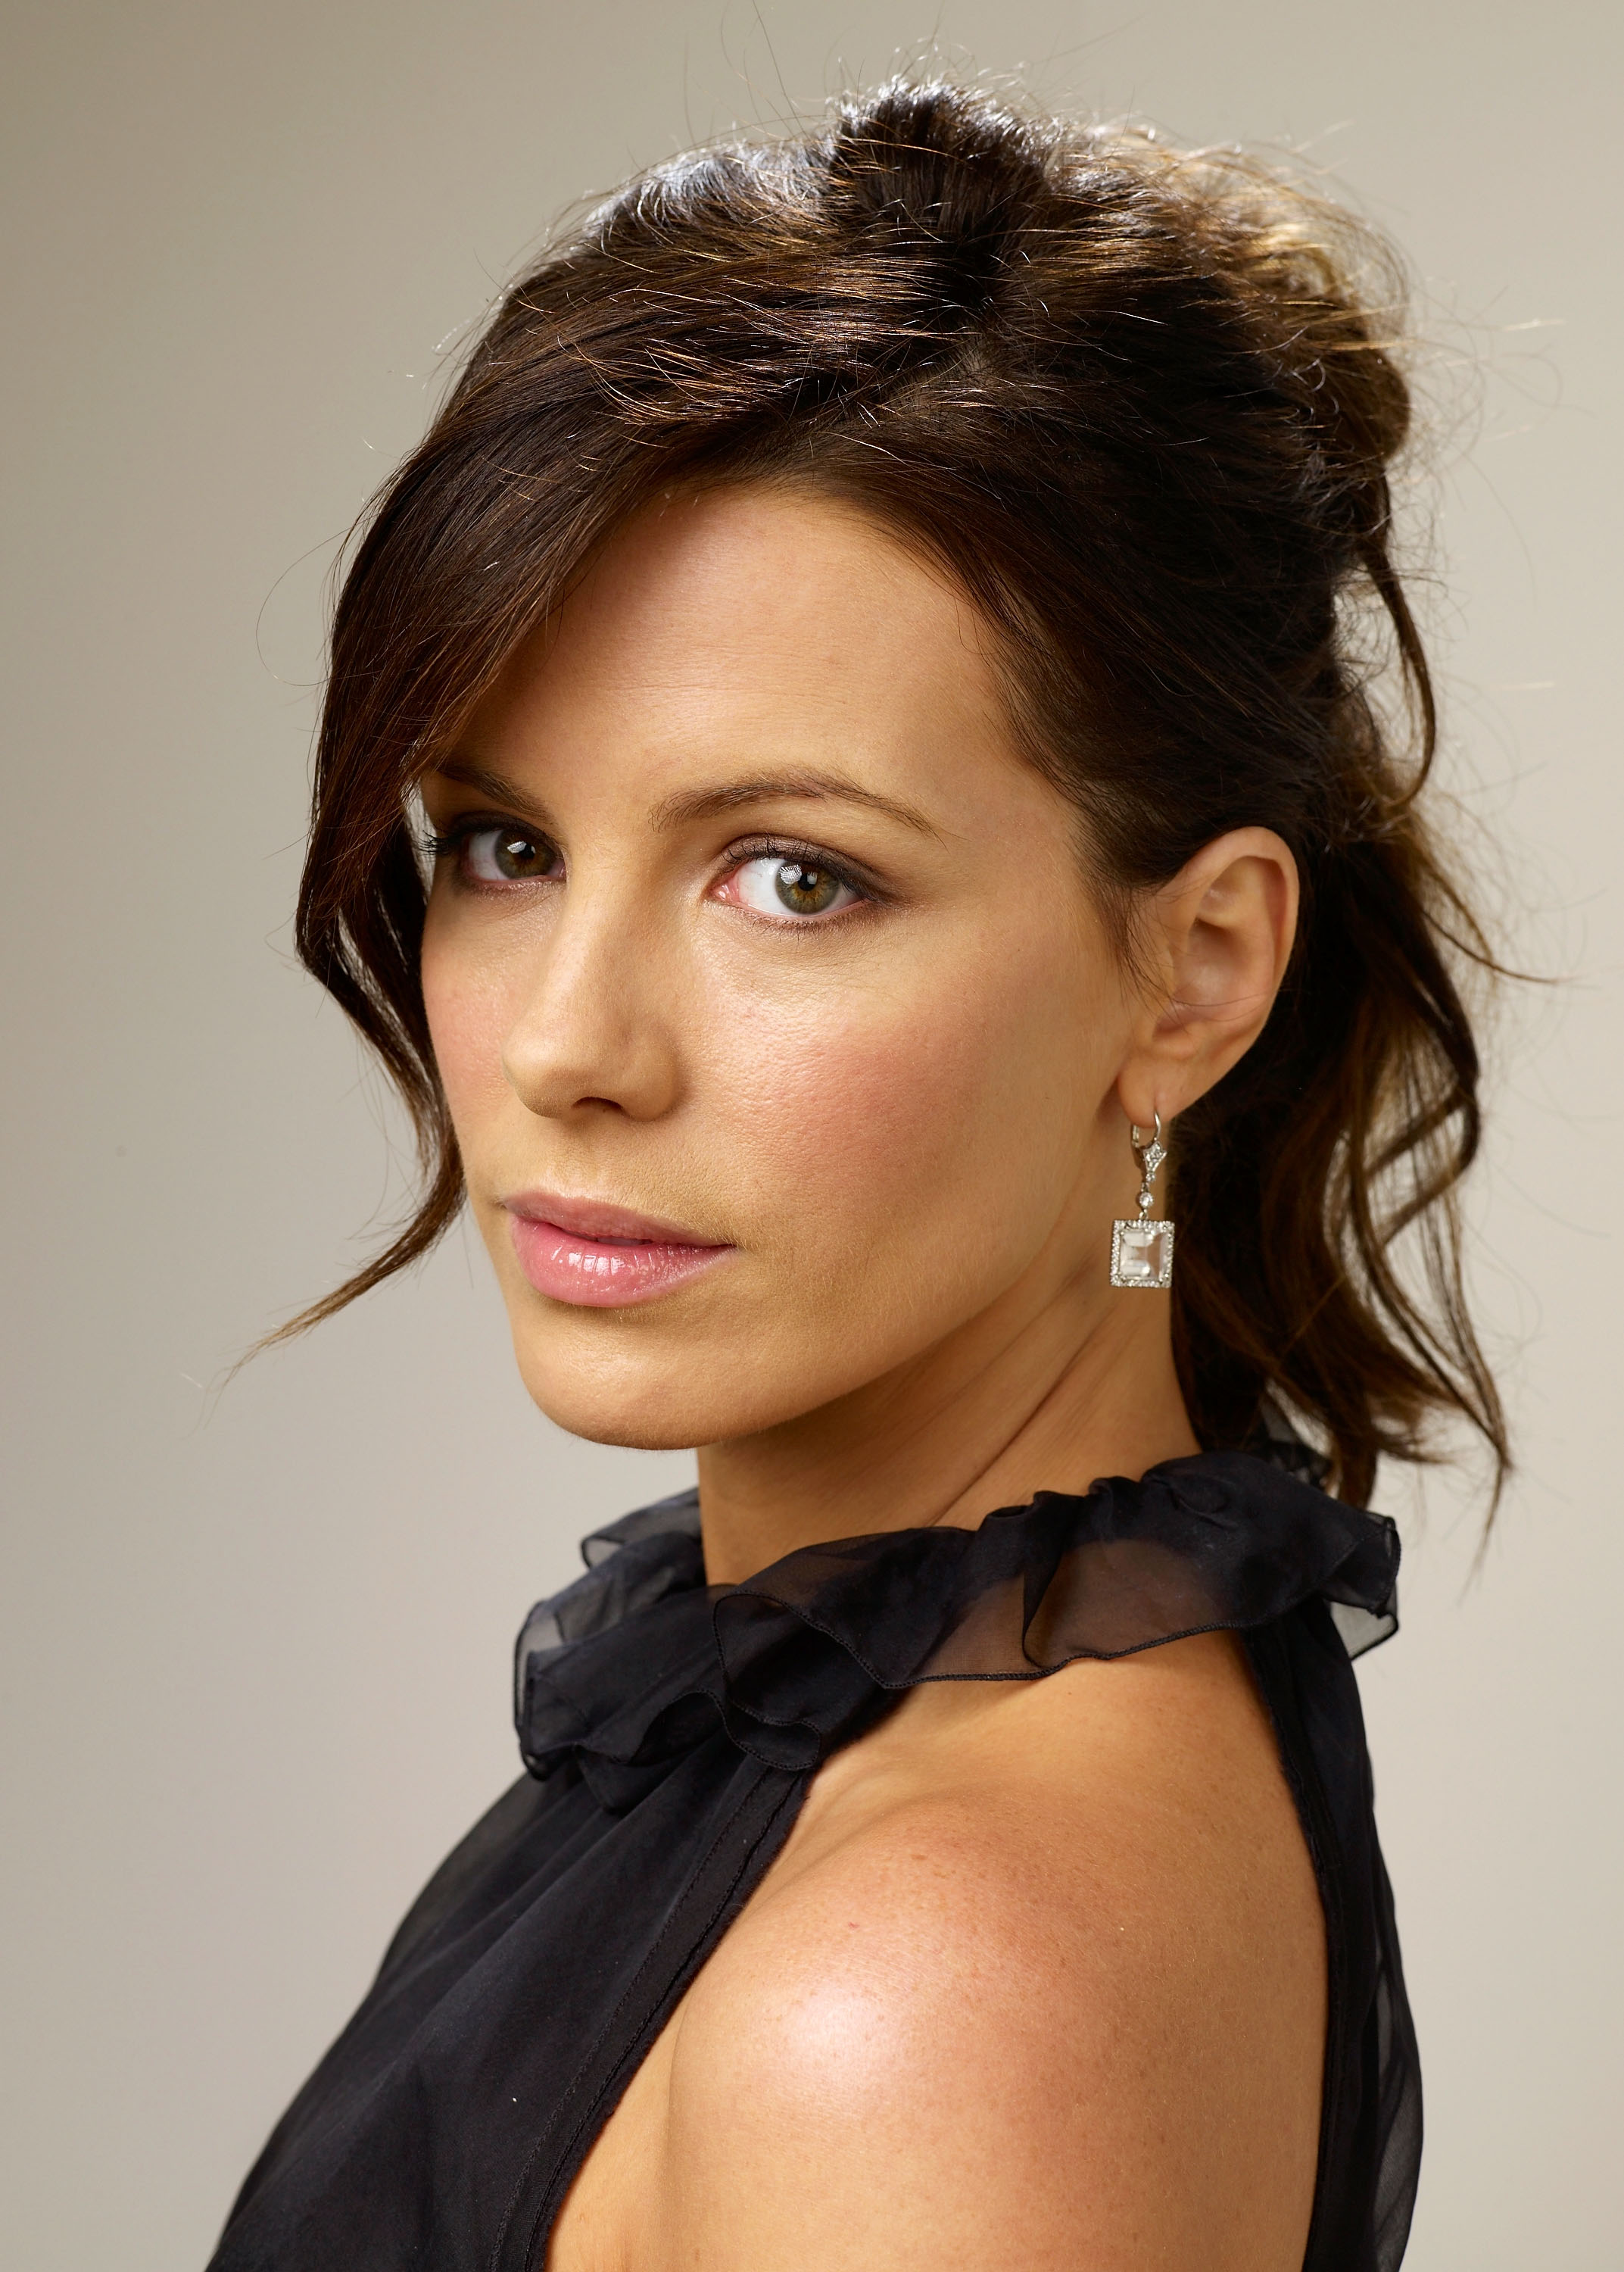 83635_Celebutopia-Kate_Beckinsale-Nothing_But_The_Truth_TIFF_2008_Portrait_Session-05_122_1065lo.jpg